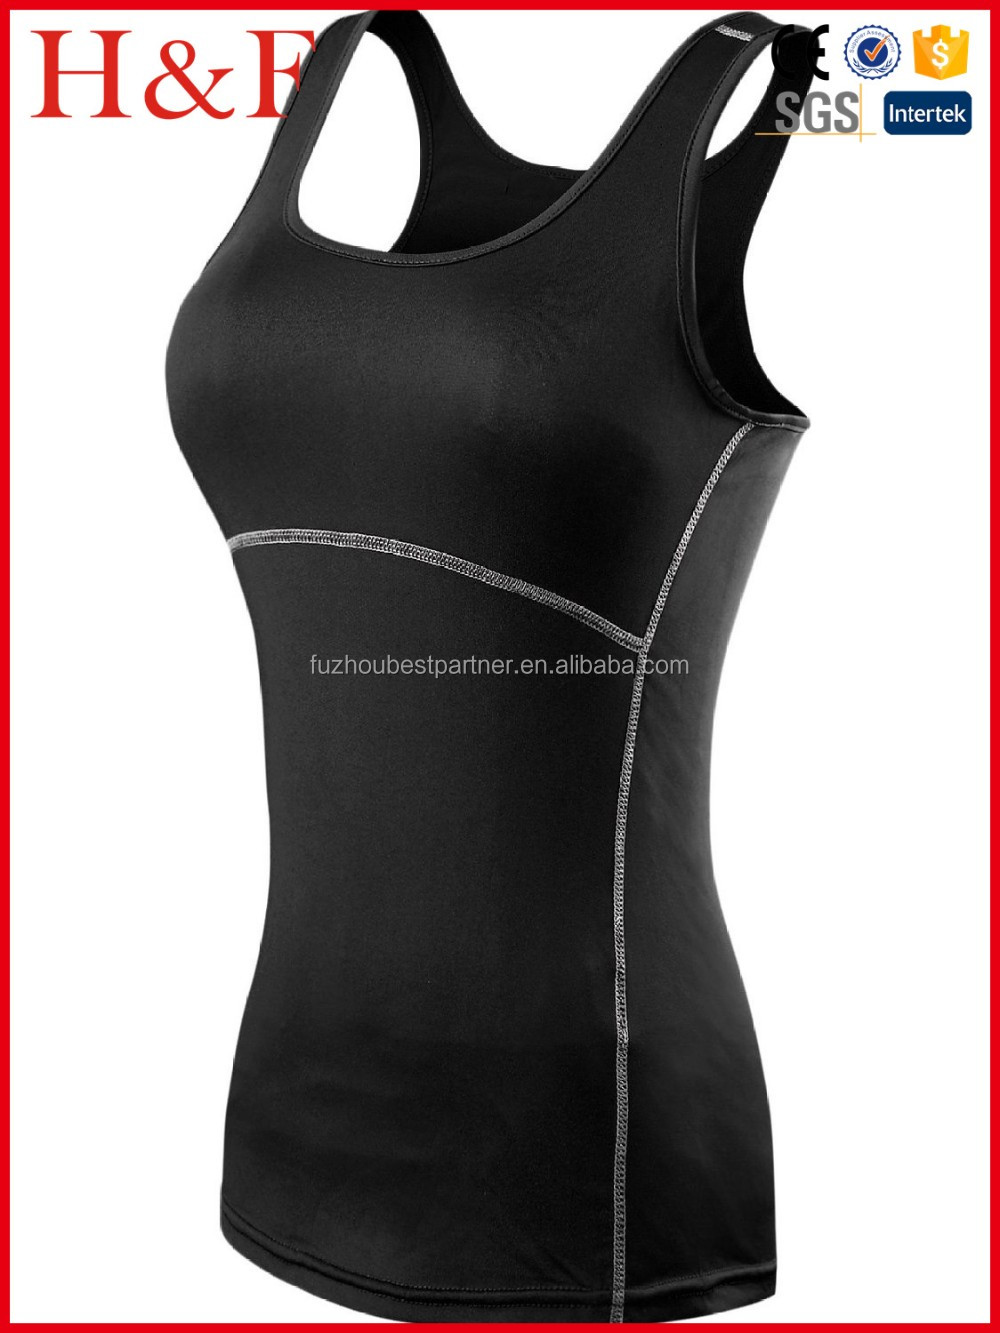 Women Compression Under Base Sports Wear Yoga Tank Tops